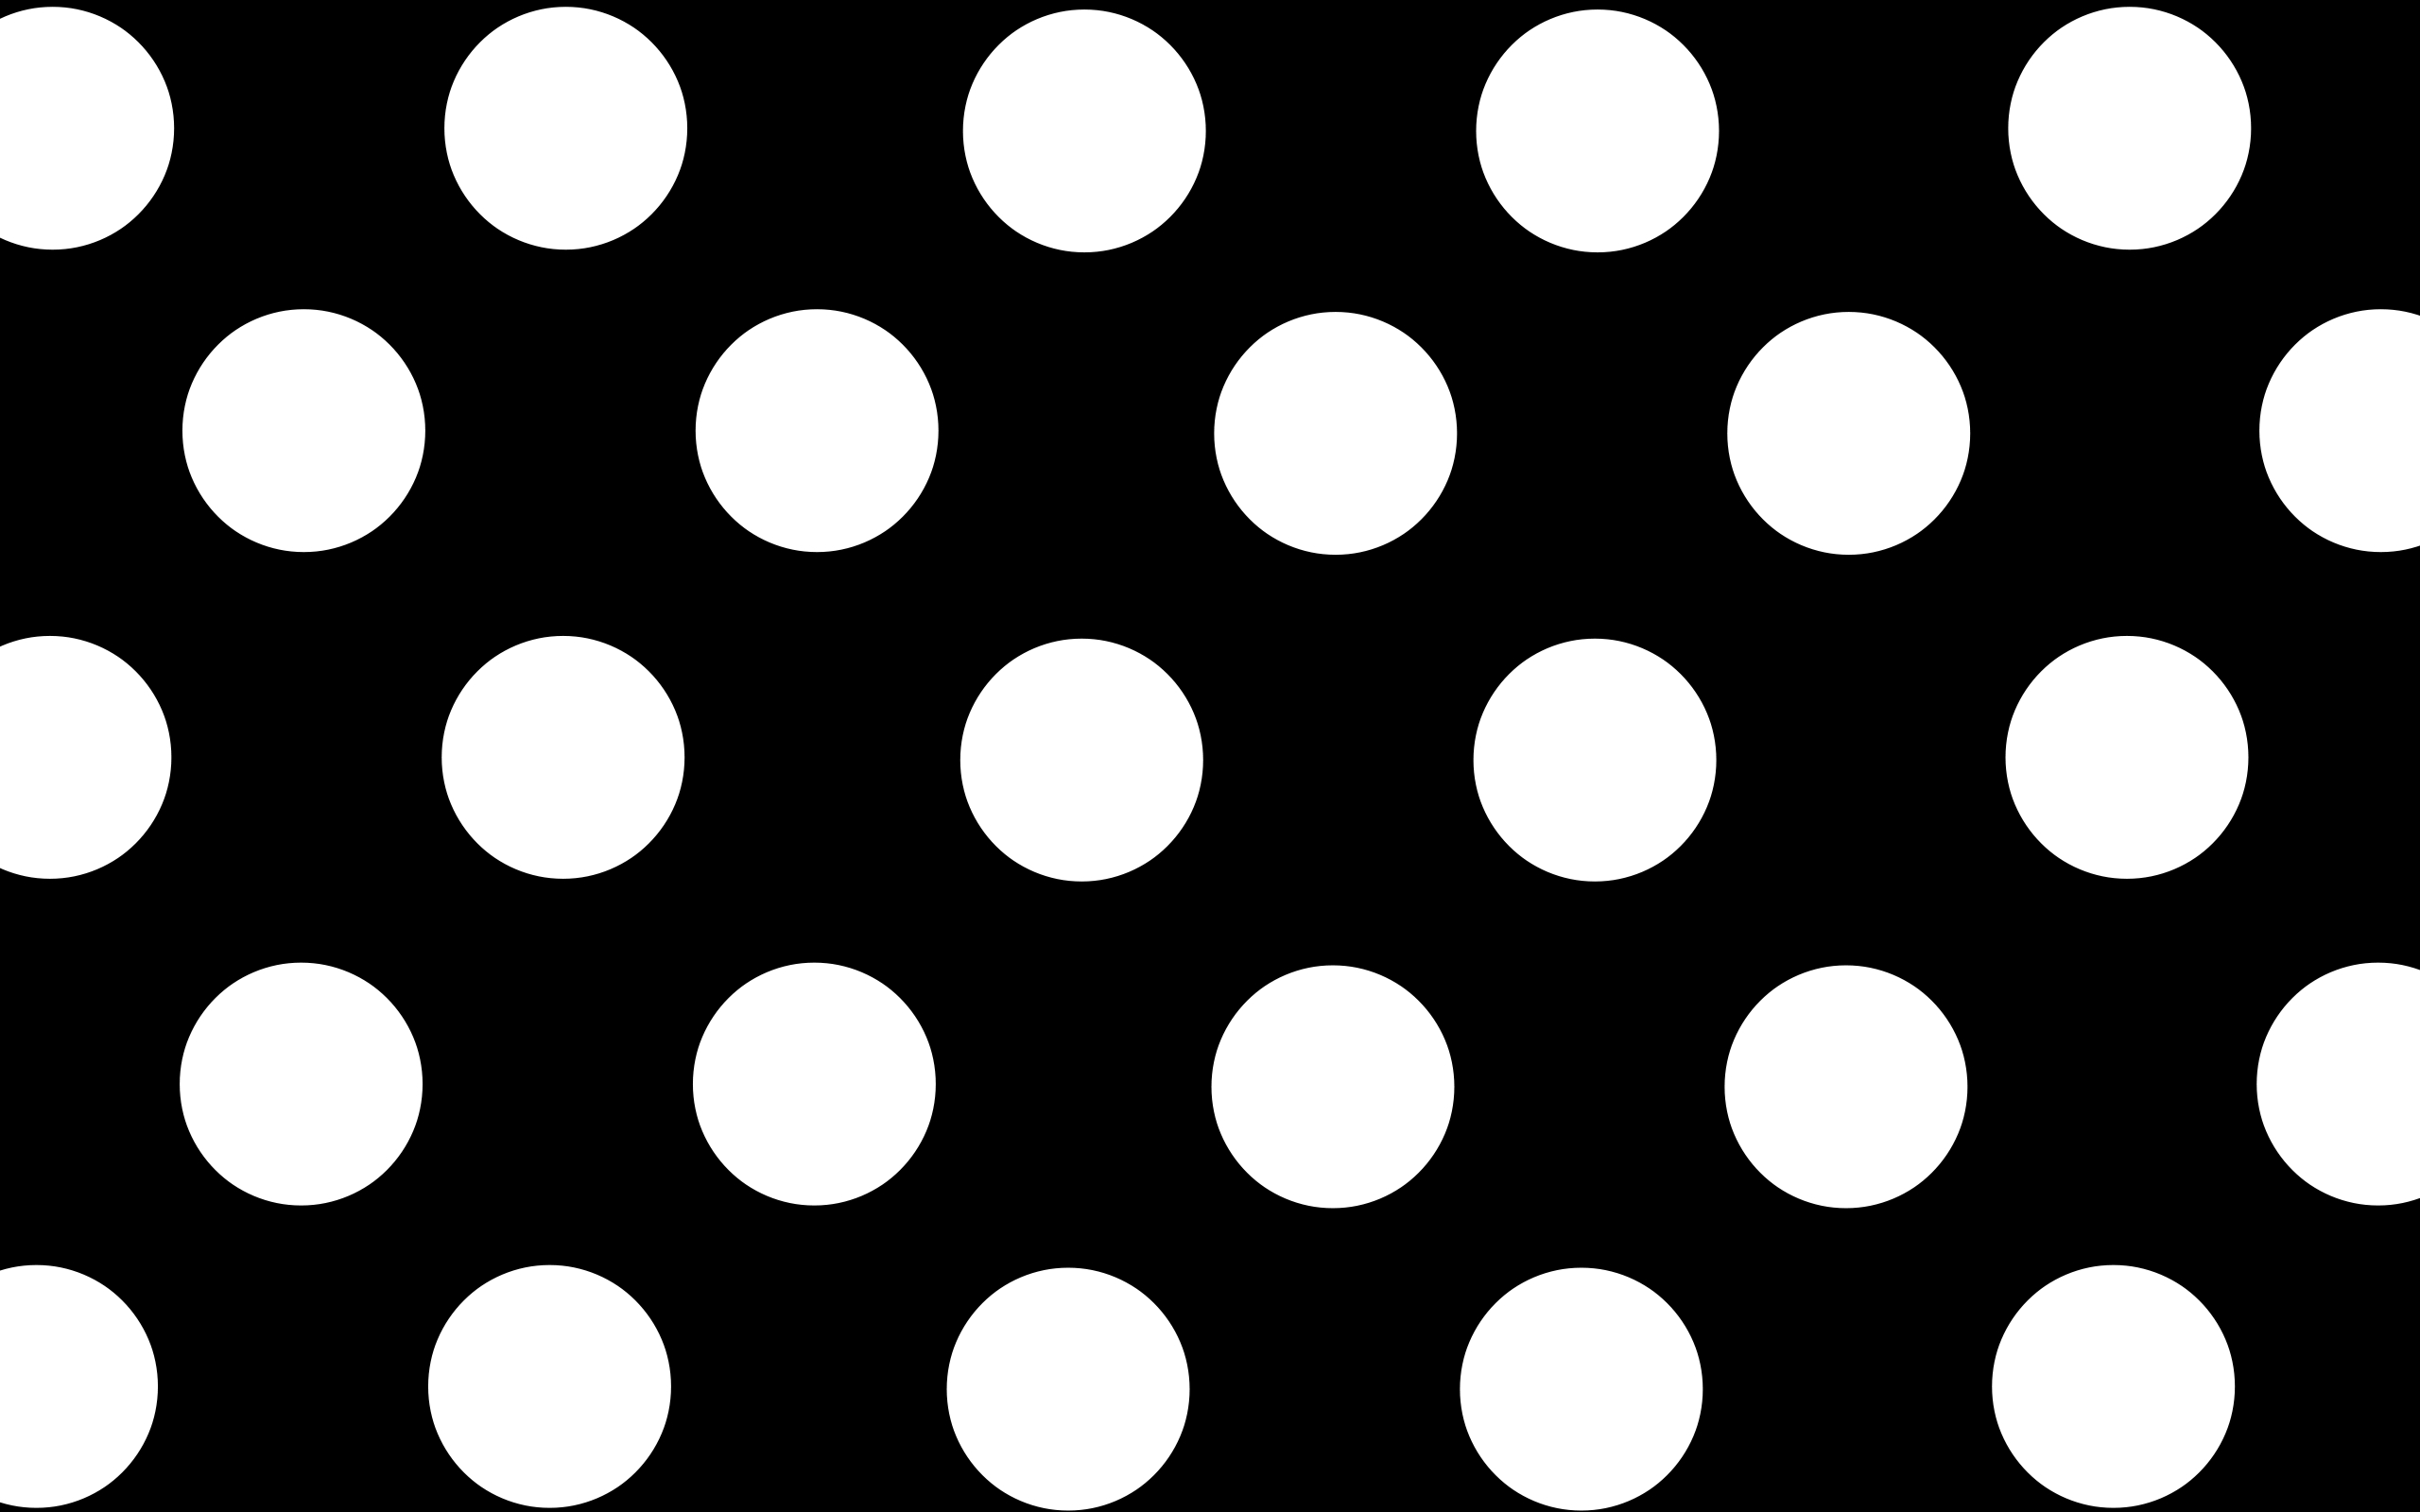 Black And White Dot Wallpaper Wallpapersafari